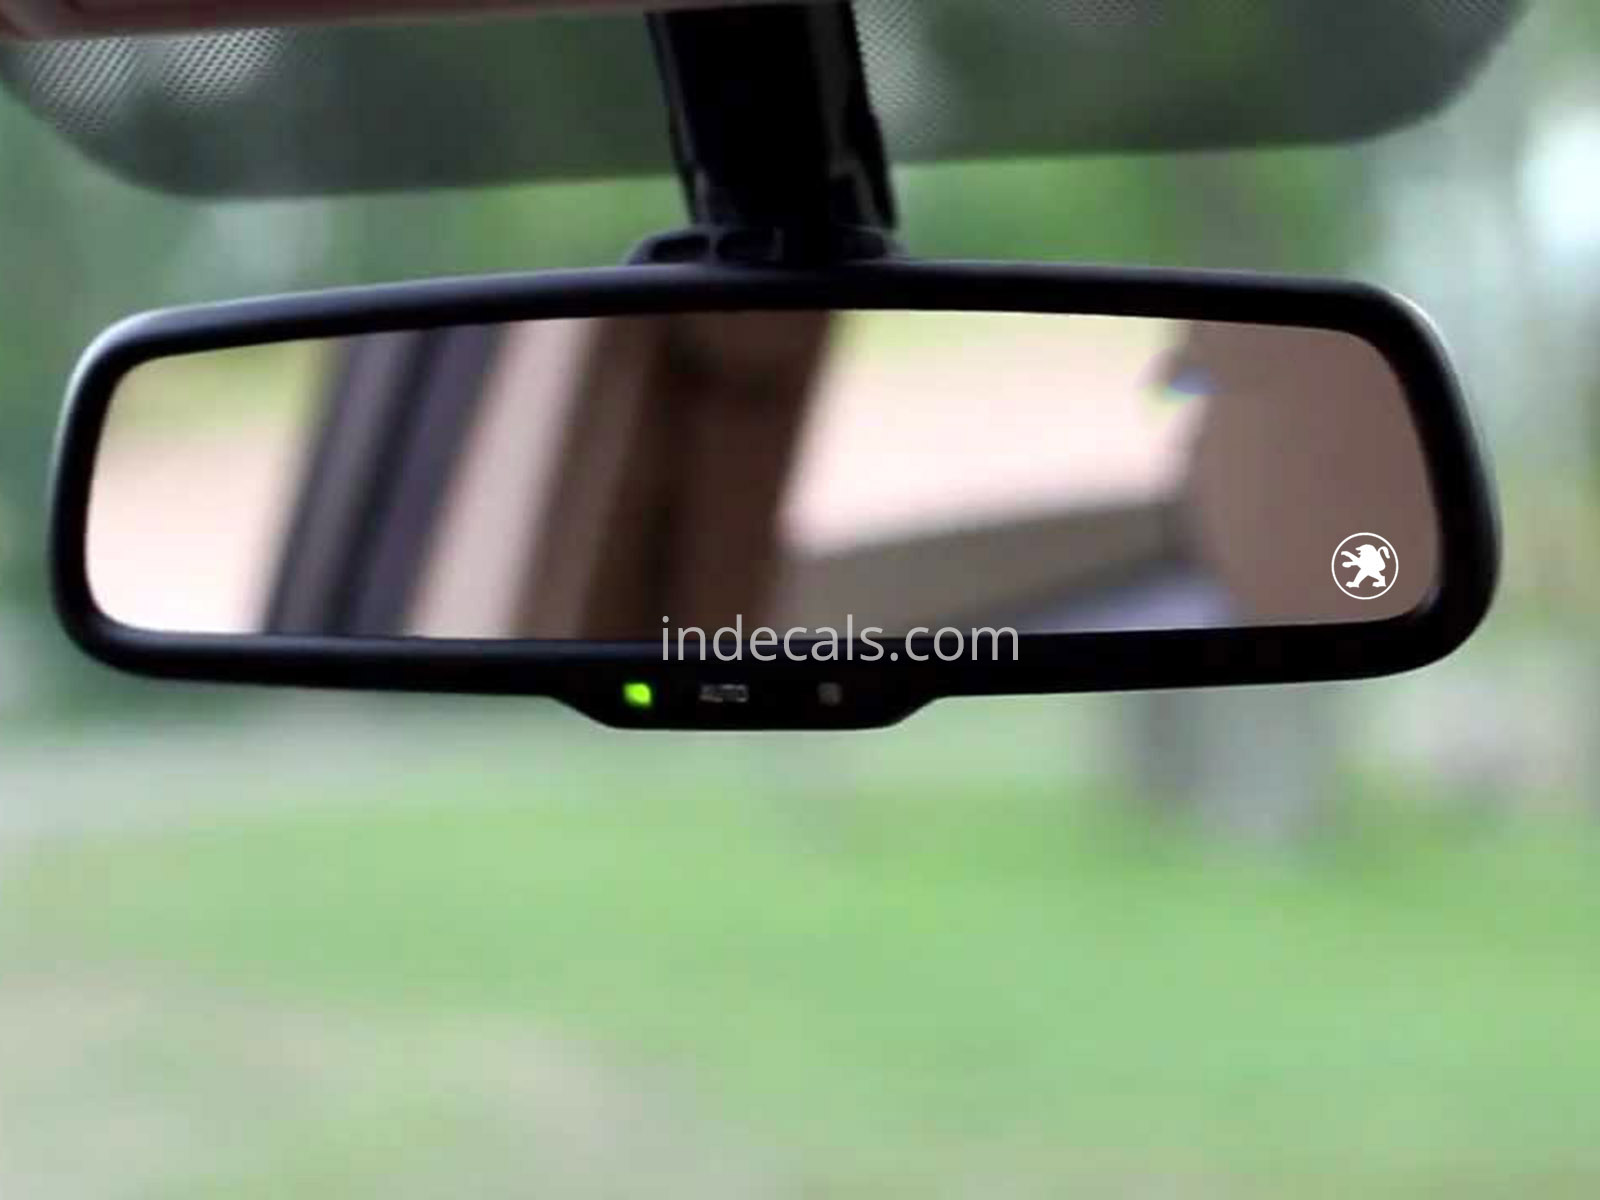 3 x Peugeot Stickers for Interior Mirror - White